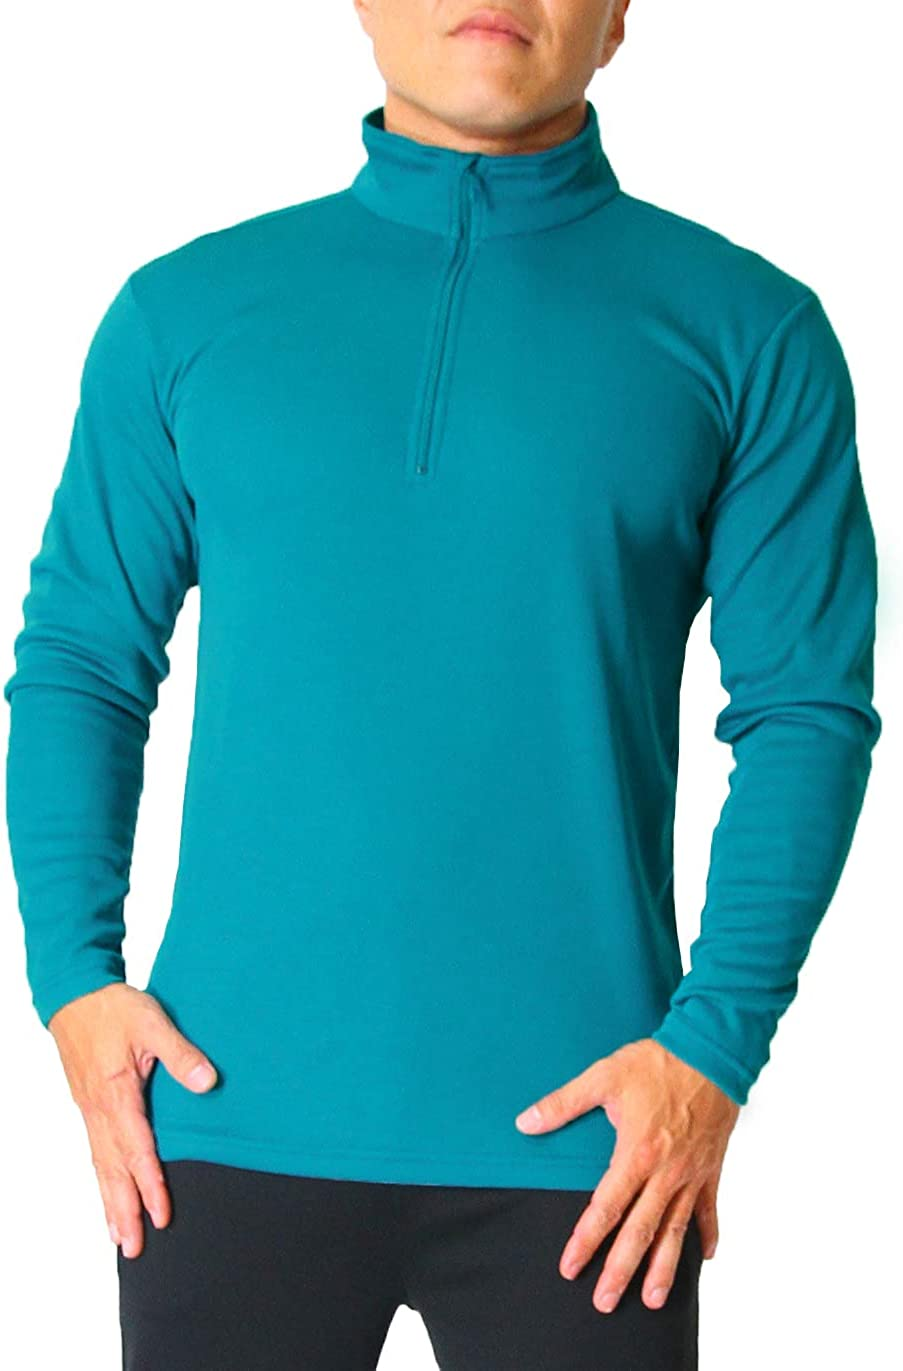 M - 3XL Odor Control /& Quick-Dry Active Sports Shirt for Hiking Litume Mens Long Sleeve Shirt with Zip Running Sports